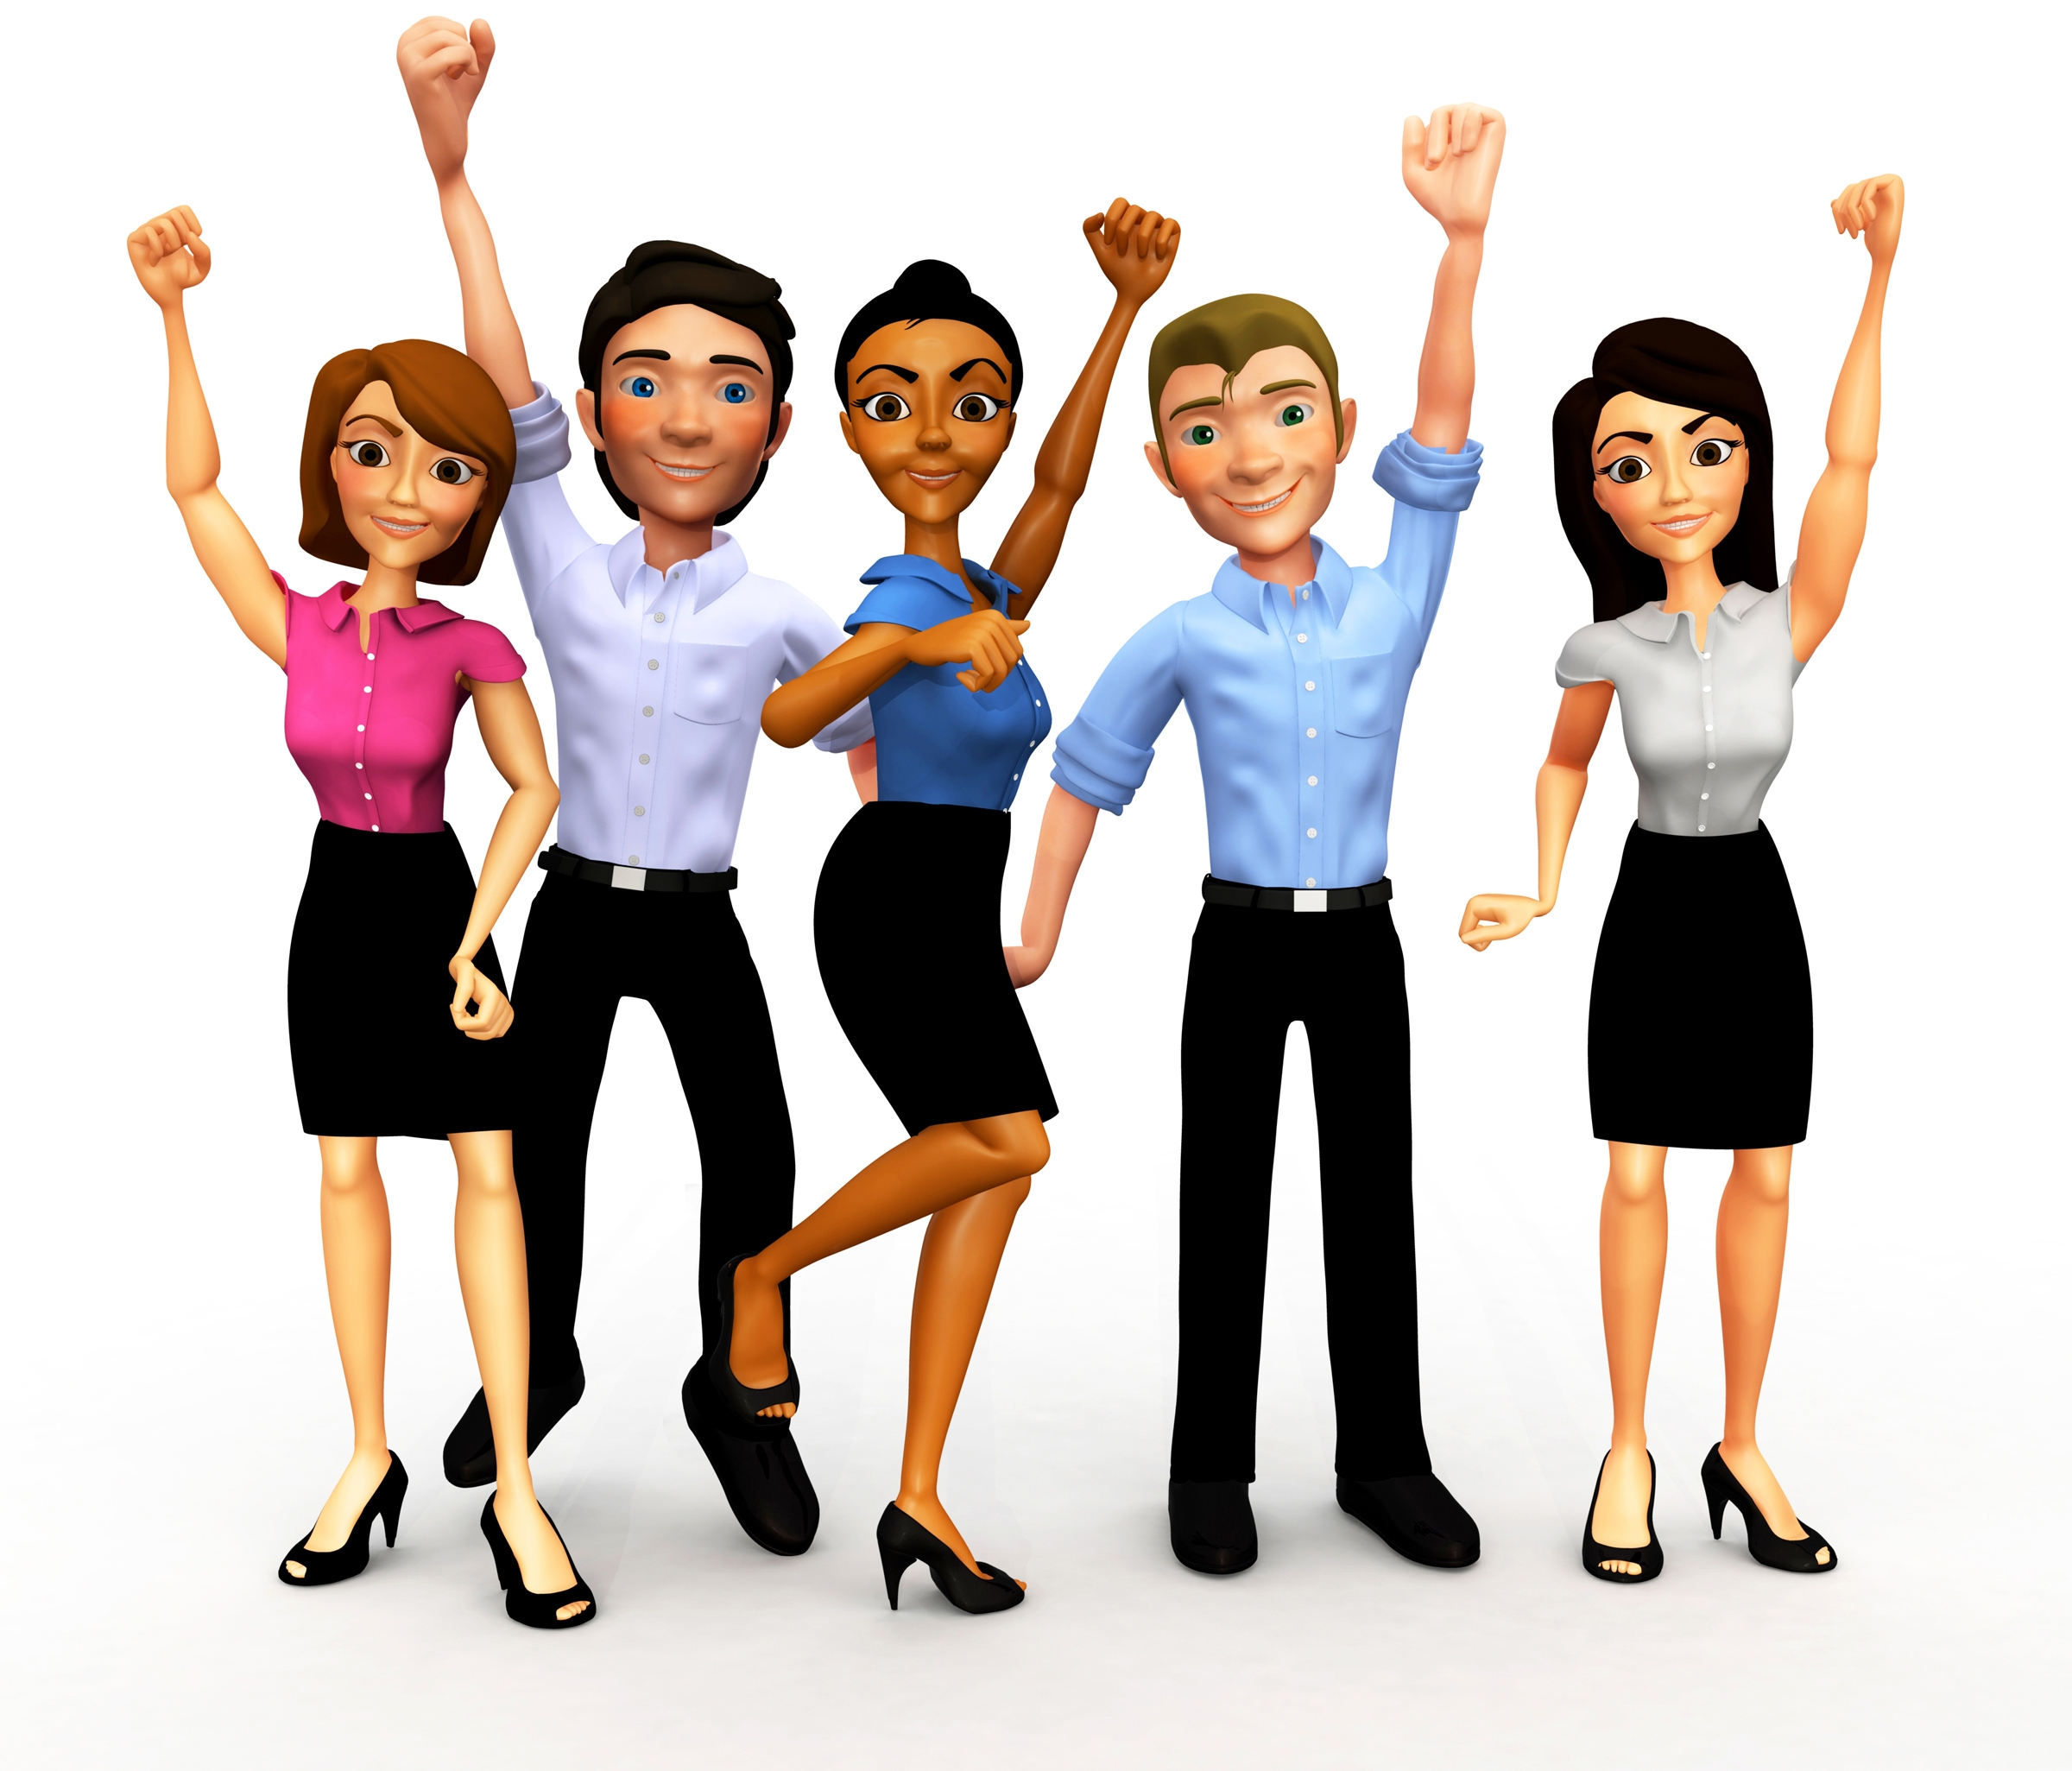 Professional clipart group professional. Transparent office people clip